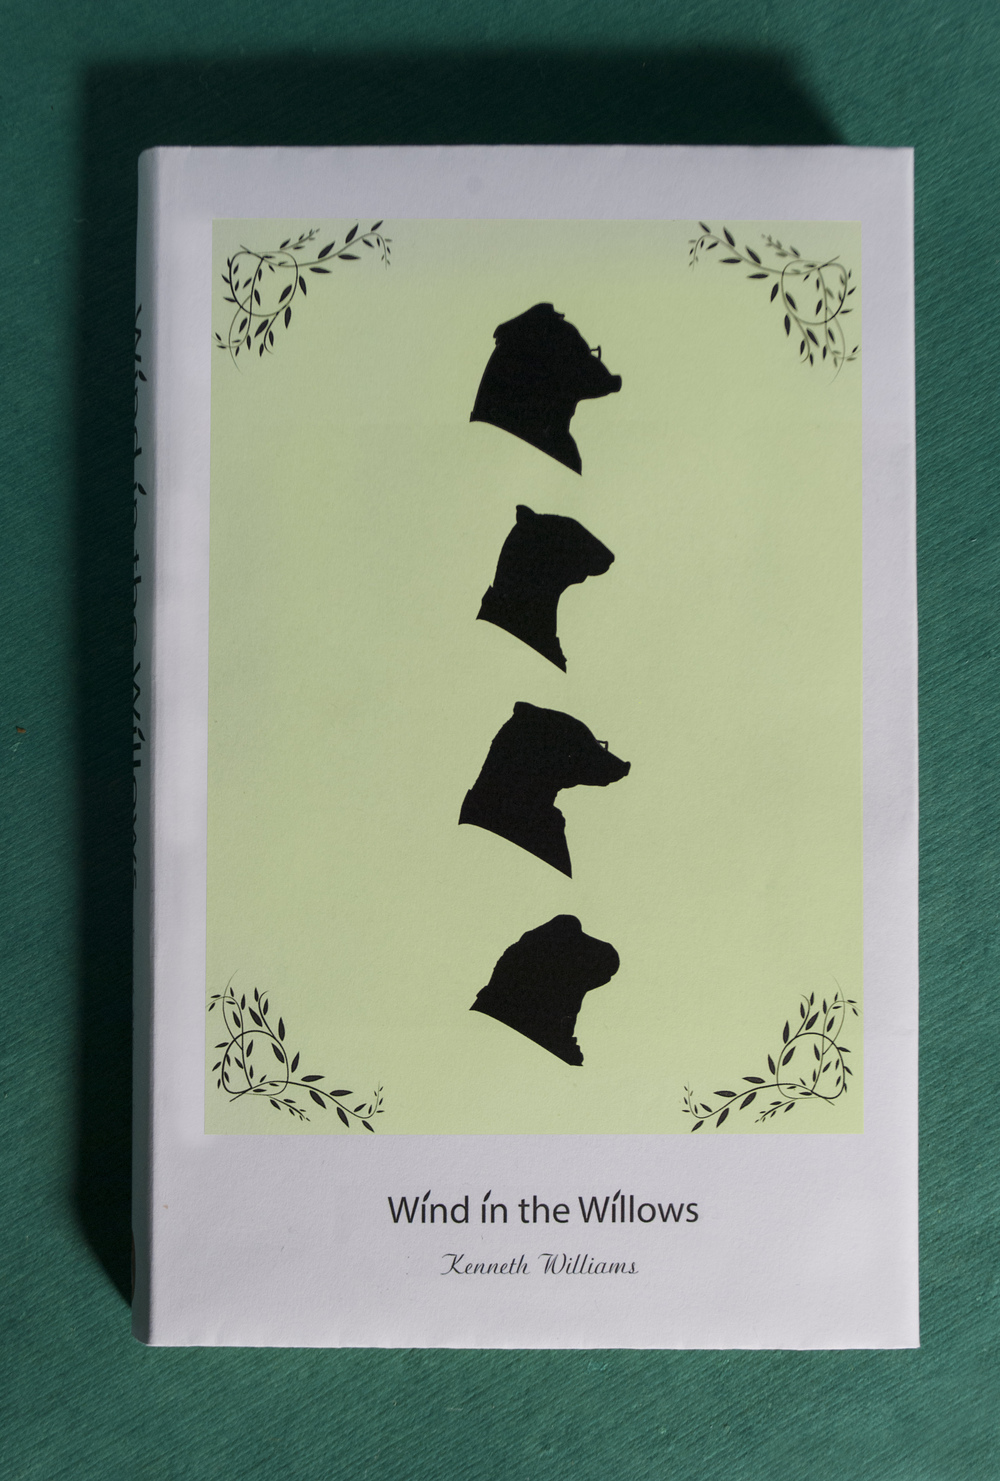 Wind in the willows 2.jpg